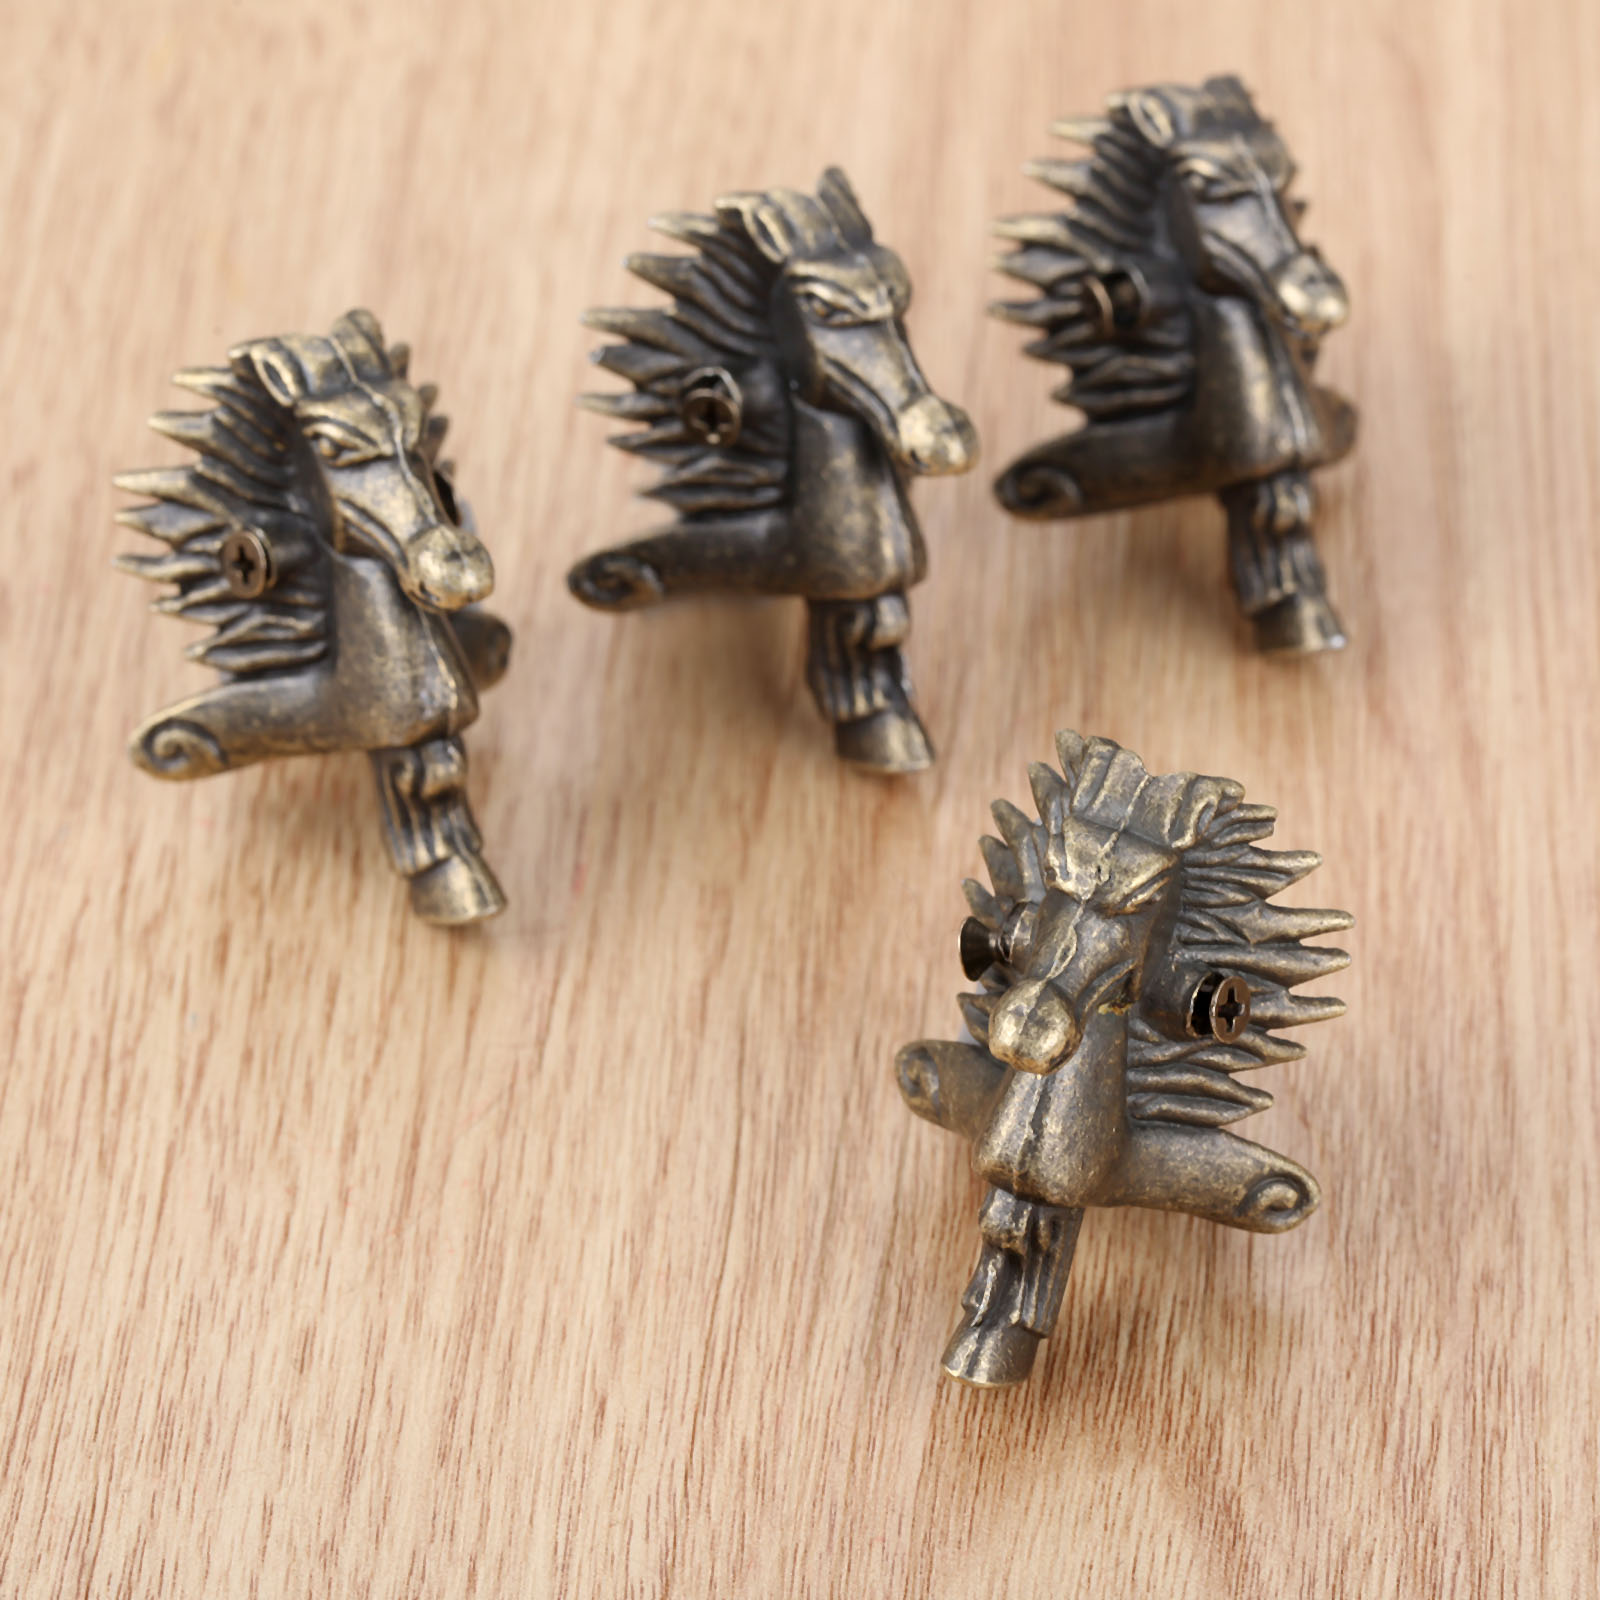 4Pcs Antique Bronze Horse Head Jewelry Gift Box Wood Case Decorative Feet Leg Corner Protector 39*24mm